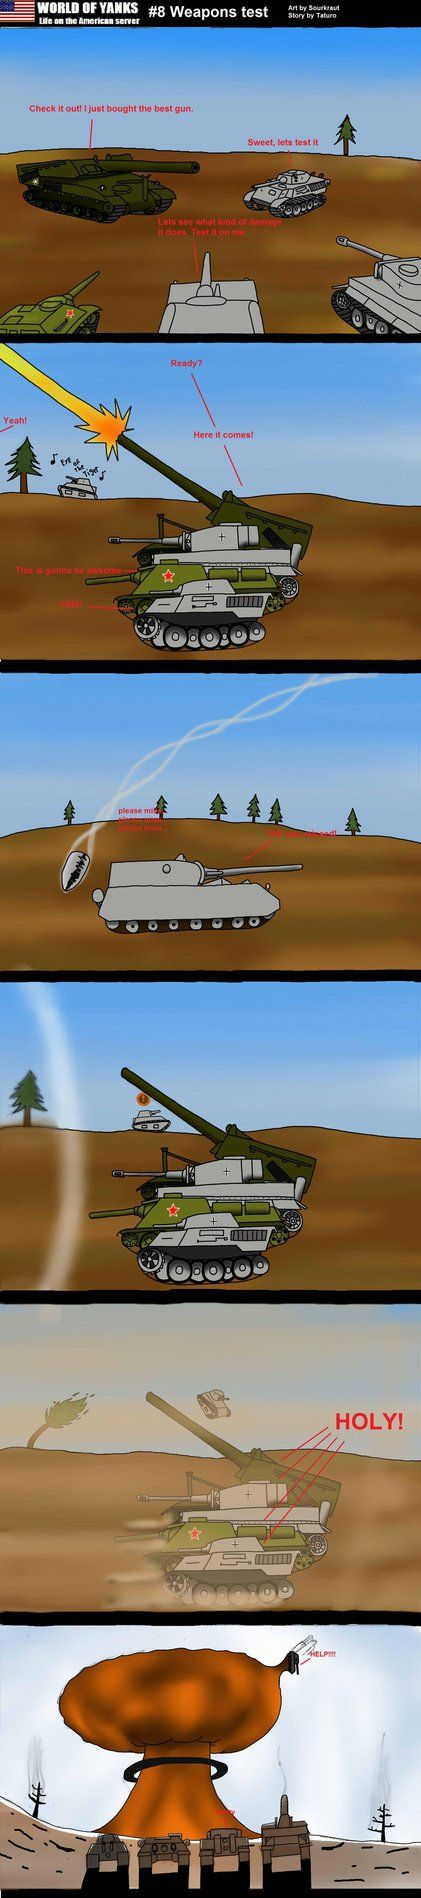 I had a lot of ideas left over after the World of Tanks comic contest so i decided to keep making them and putting them in the WOT forums for those who wahted me to keep drawing them. Didnt draw th...